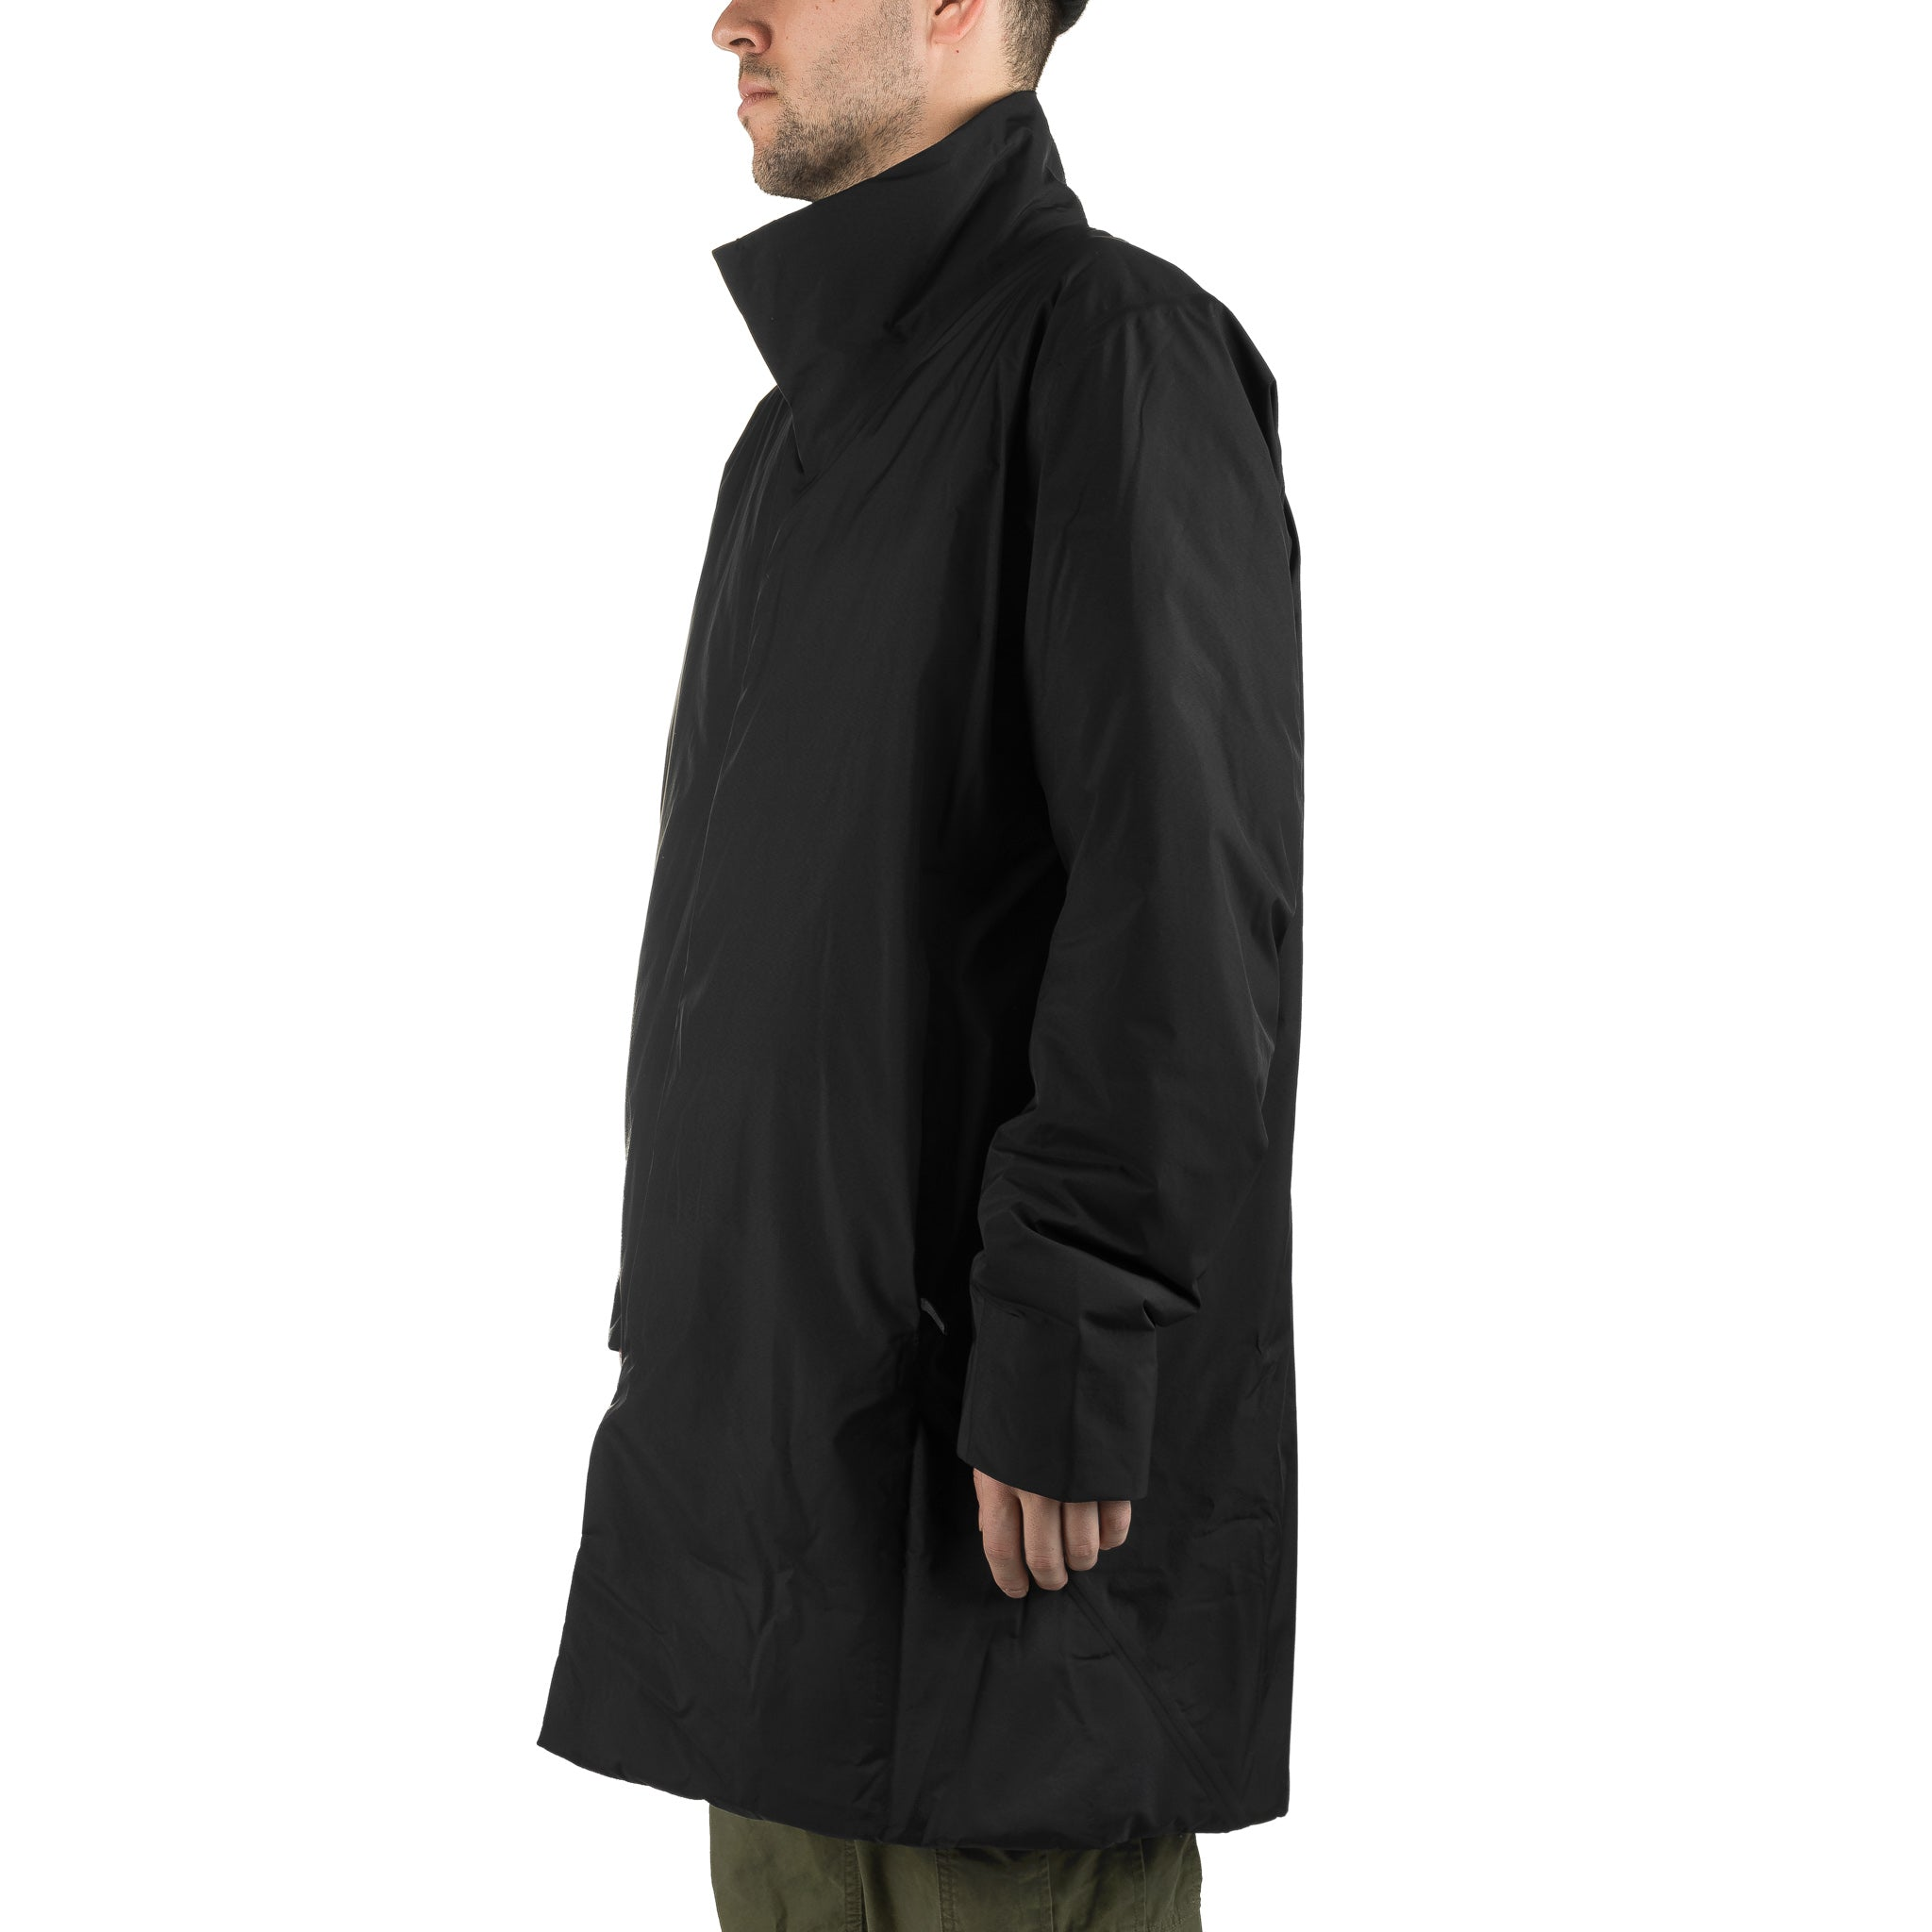 Euler IS Coat 24238 Black